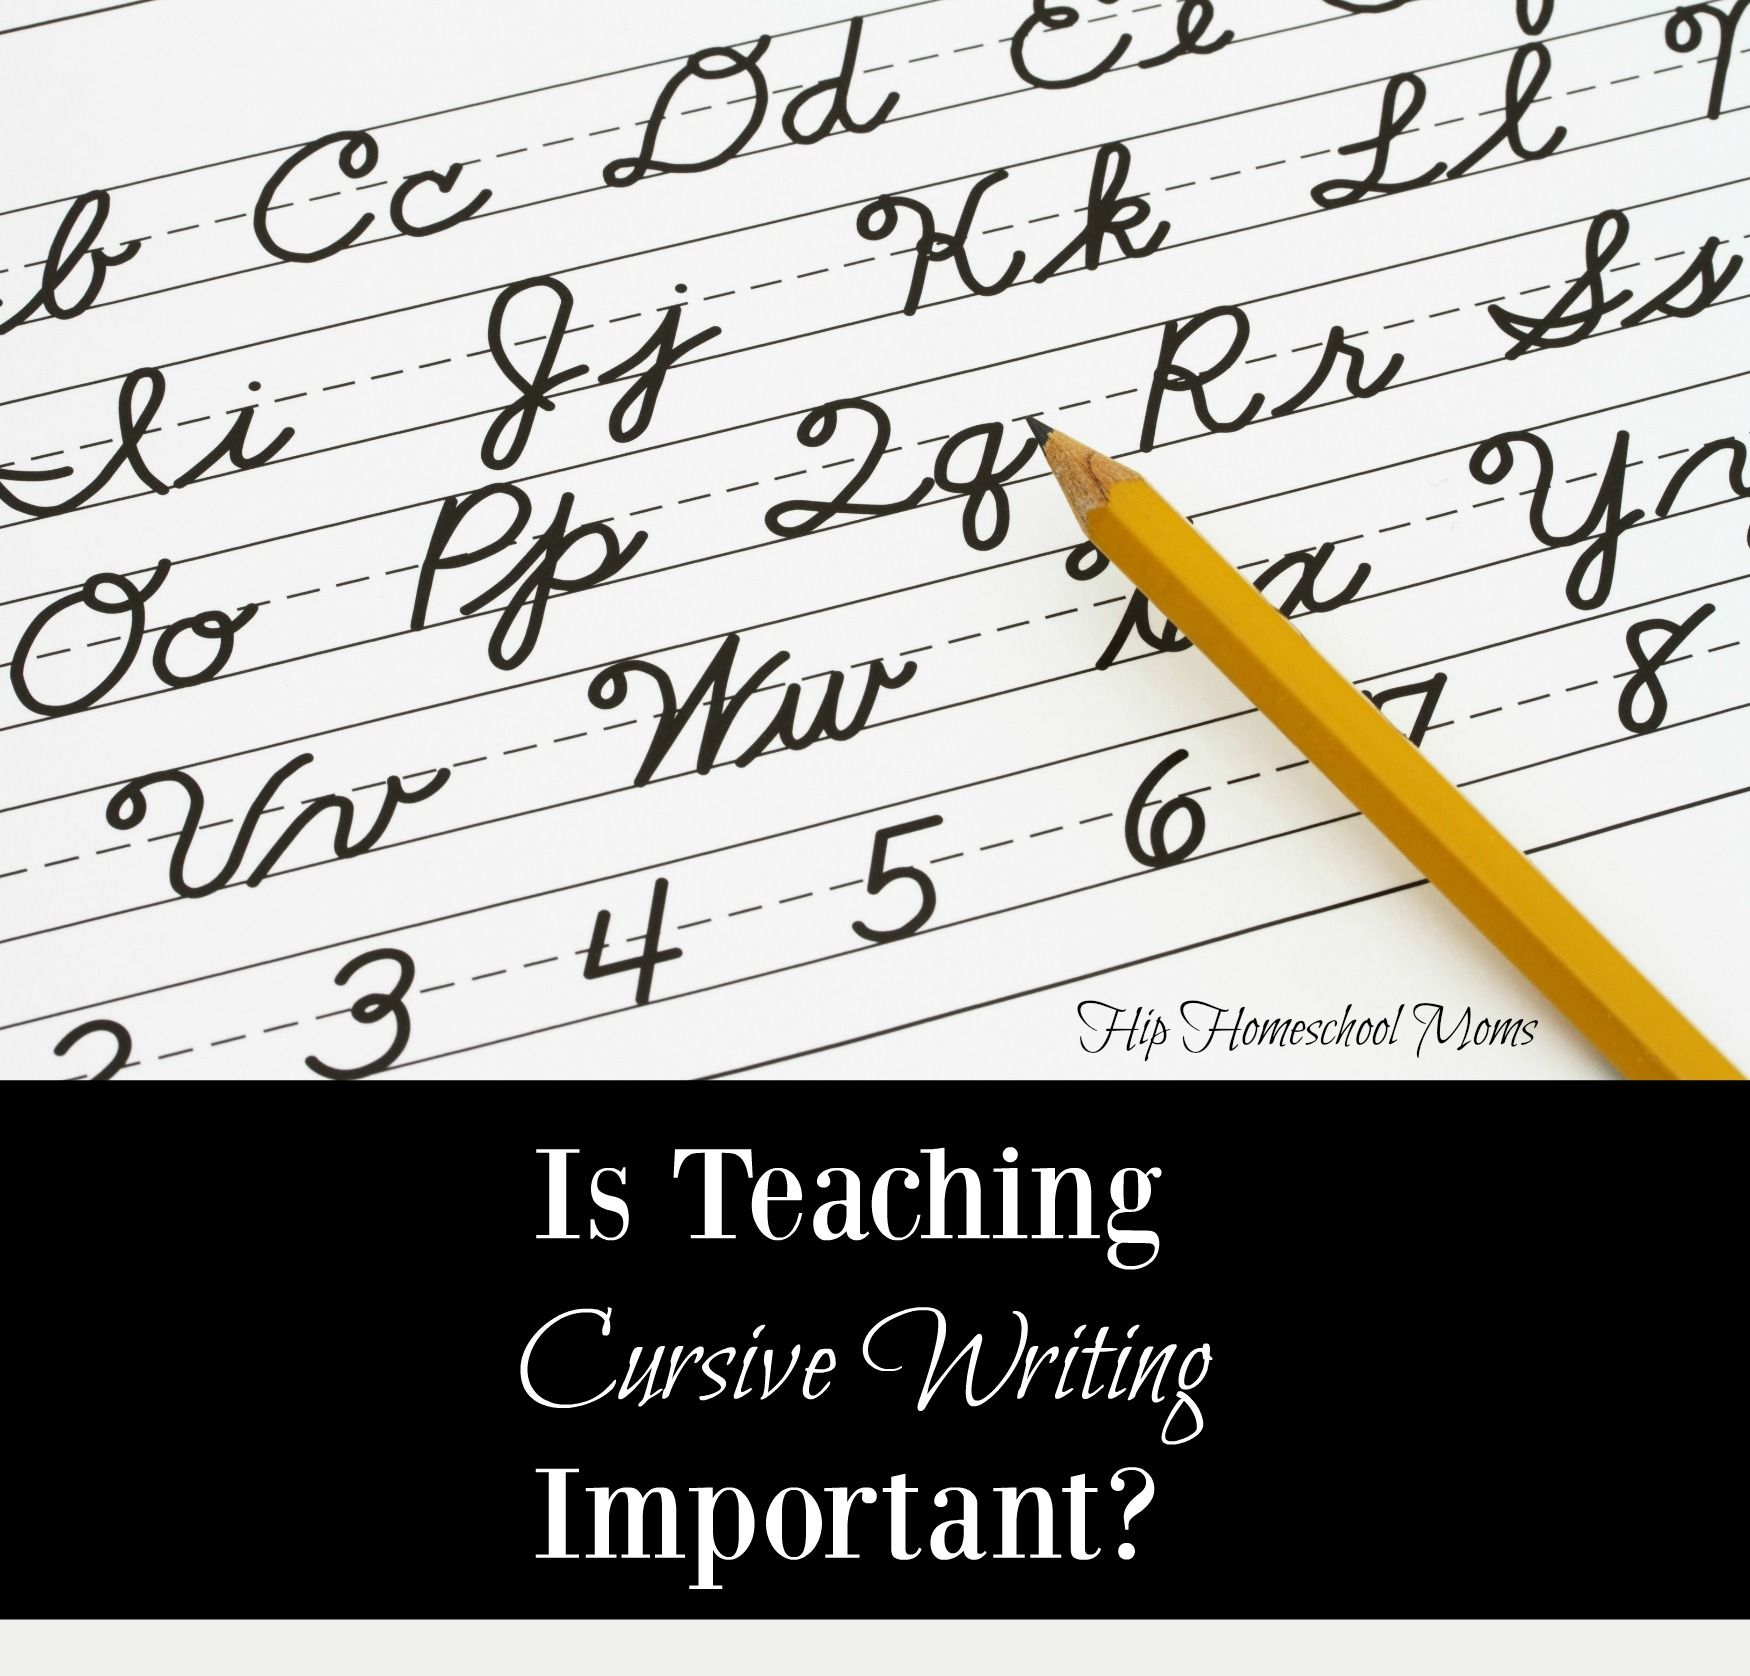 Is Teaching Cursive Writing Important